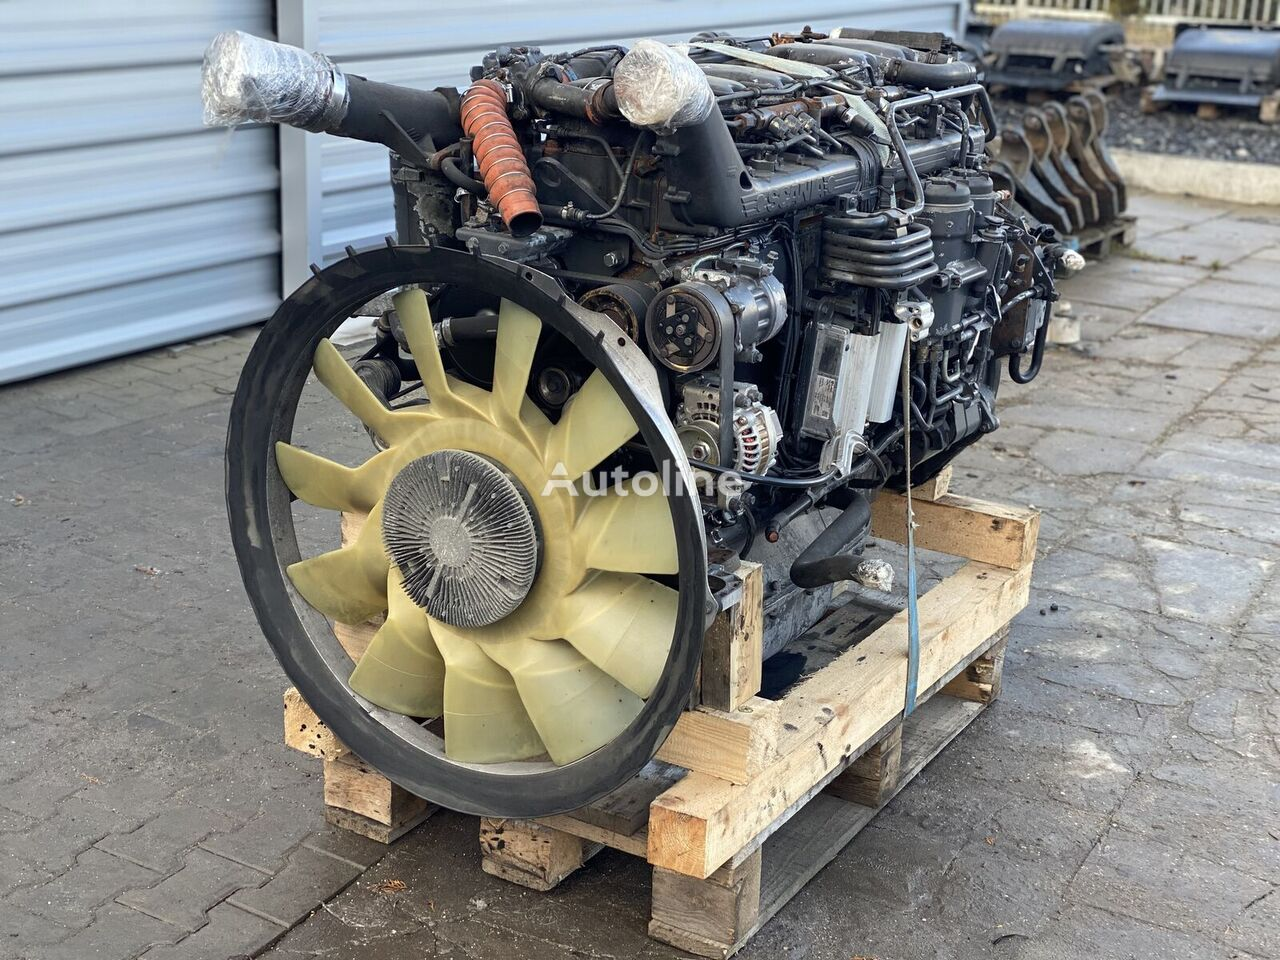 SCANIA R440 XPI EURO 5 / DC1310 WITHOUT ADBLUE / WORLDWIDE DELIVERY motor para SCANIA tractora